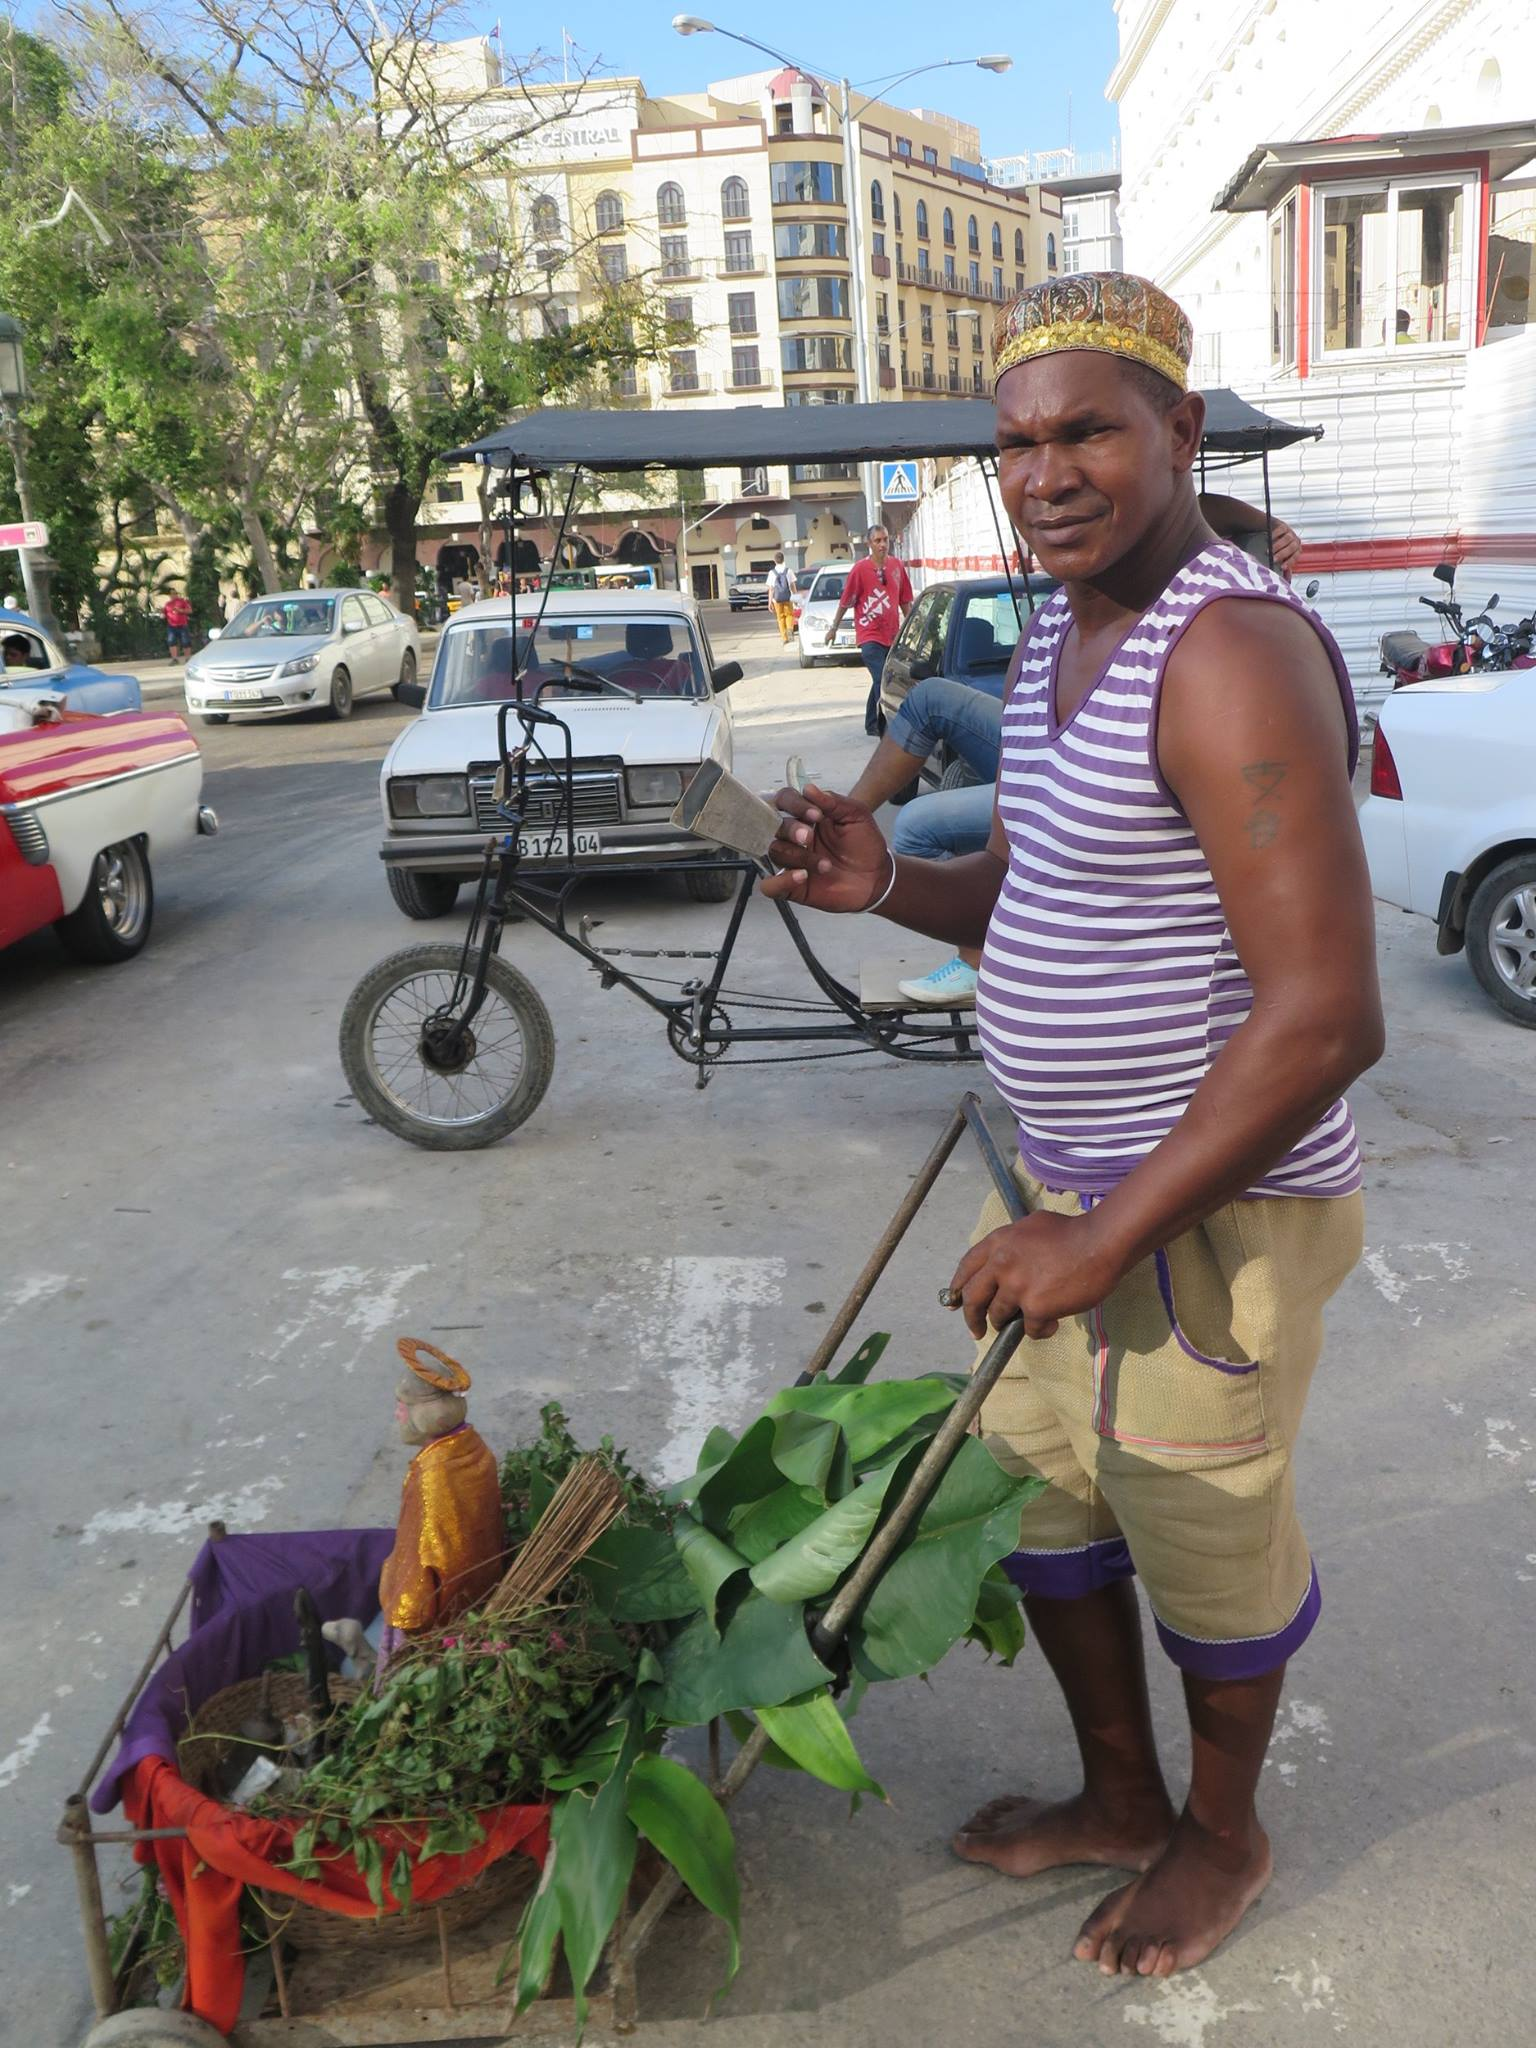 san lazaro, saint lazaro, celebration, worship, religion, santeria, catholicism, catholic, cuba, cuban, cuban streets, cuban celebration, streets of cuba, saint, patron saint of suffering, caribbean island, worshippers, food, vegetables, man, produce,